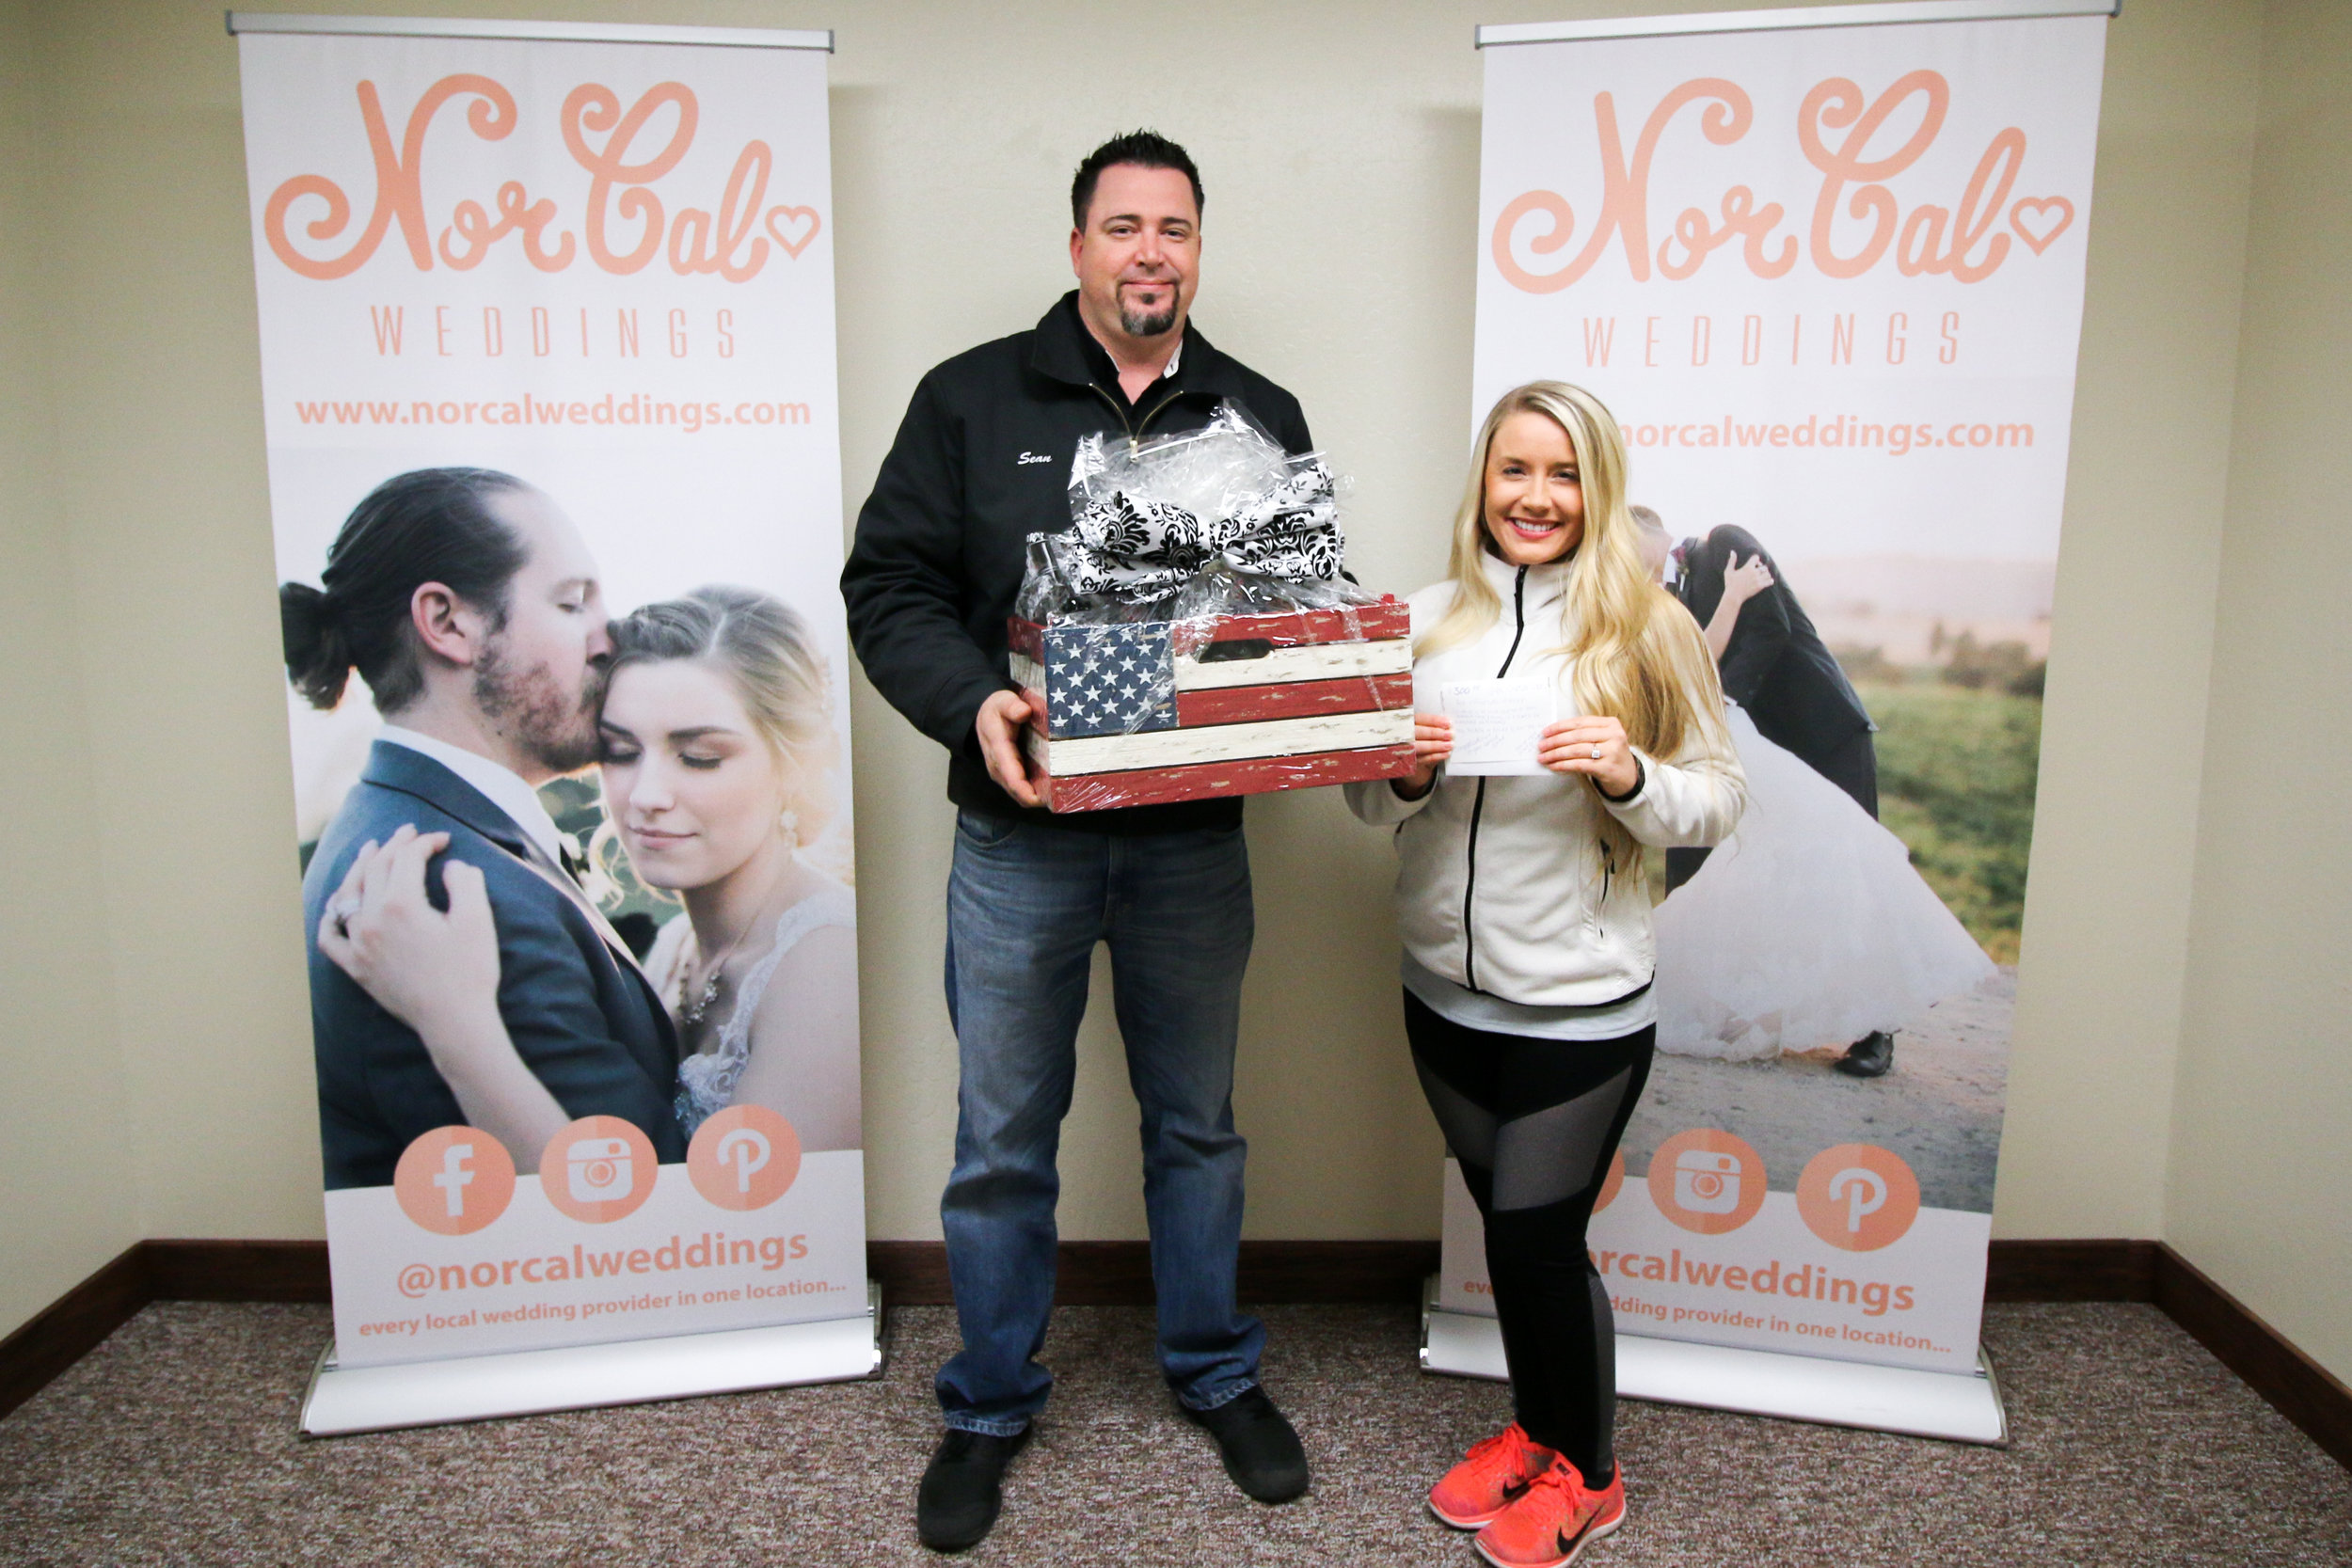 Congratulations to Ashlie & Sean!!! They are the winners of the Gift Certificate & Gift Basket from  Etched in Elegance  Catering!!! Ashlie & Sean are getting married on 04/29/2017 & we wish them a happy wedding & a beautiful life together!!!